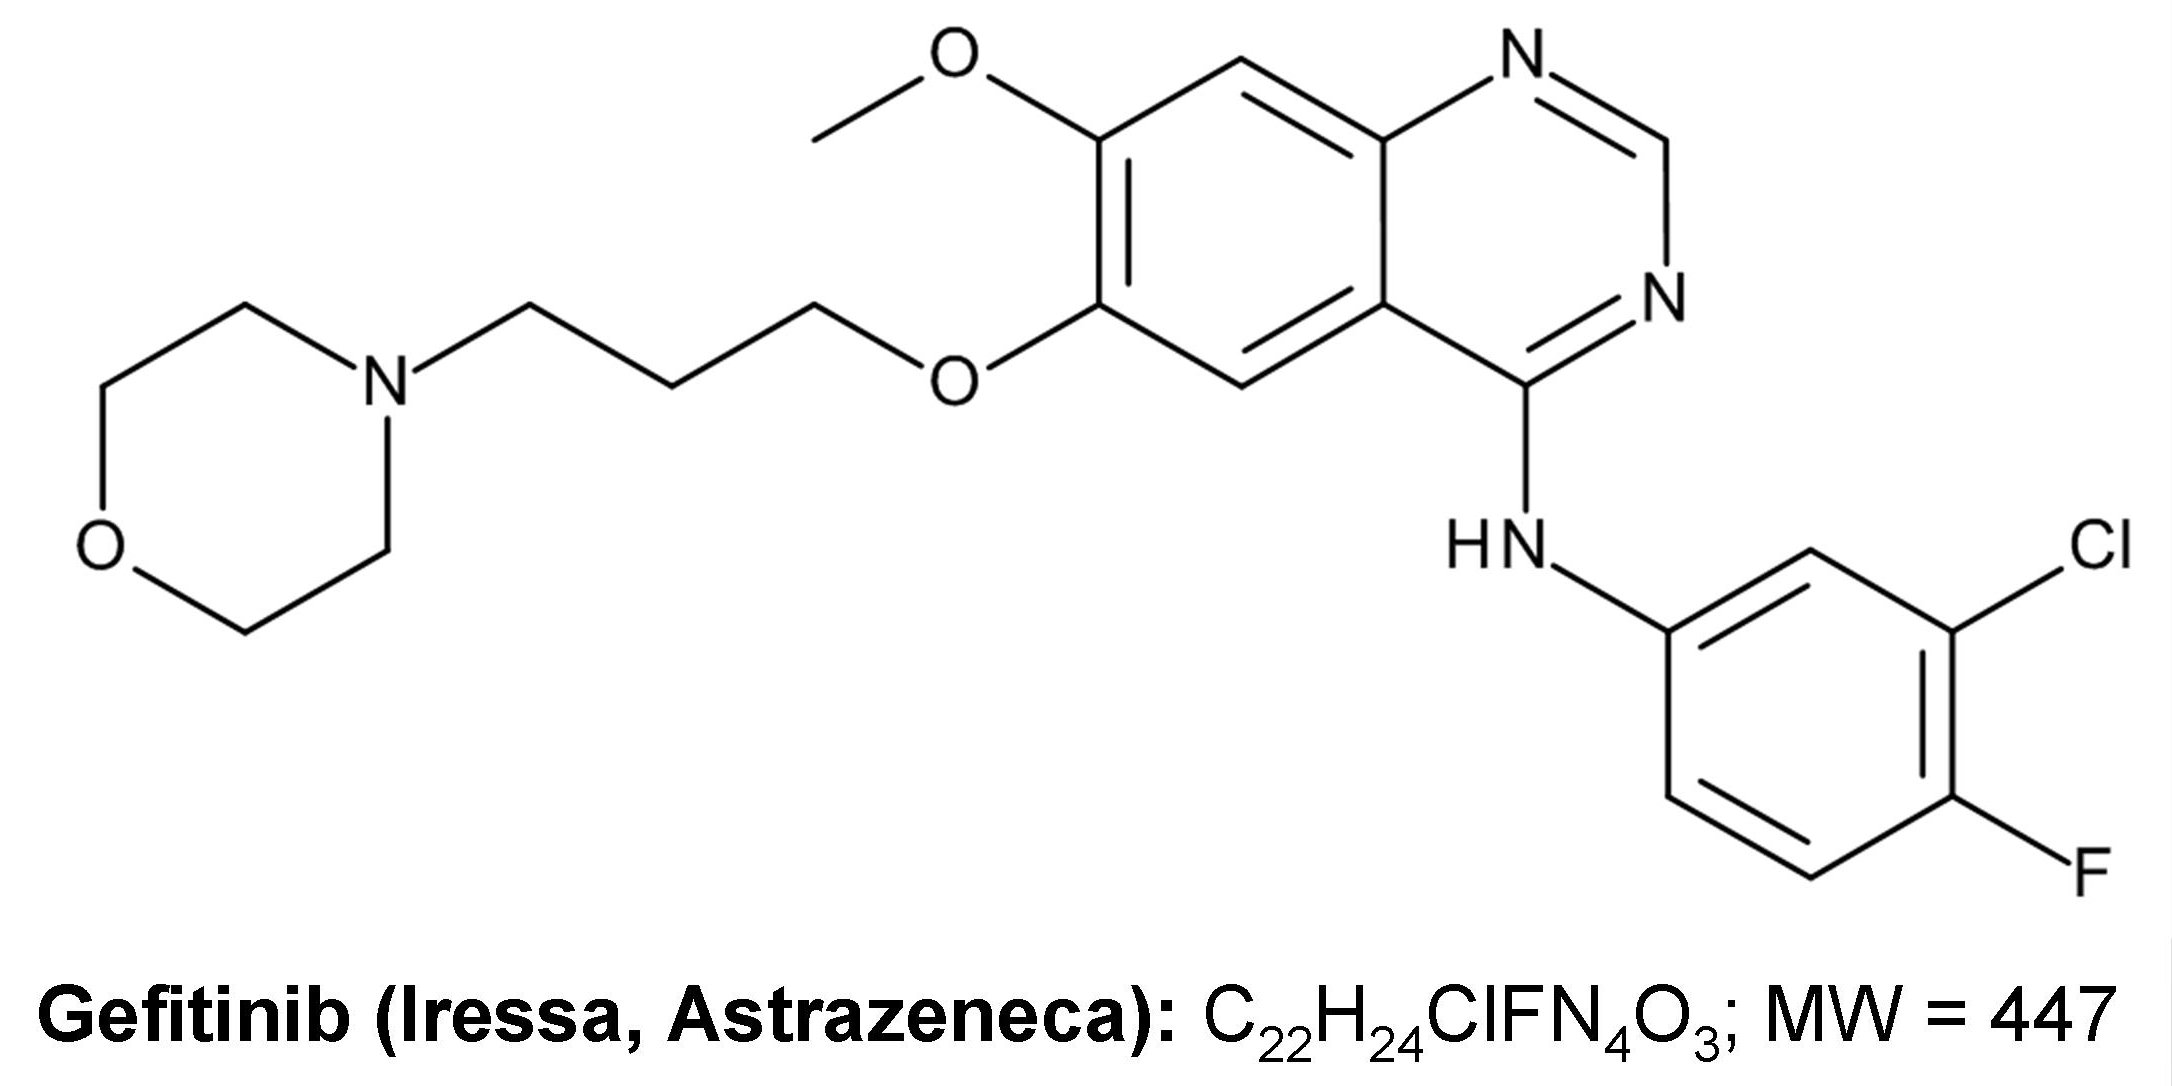 FDA-approved protein kinase inhibitors/US Food and Drug